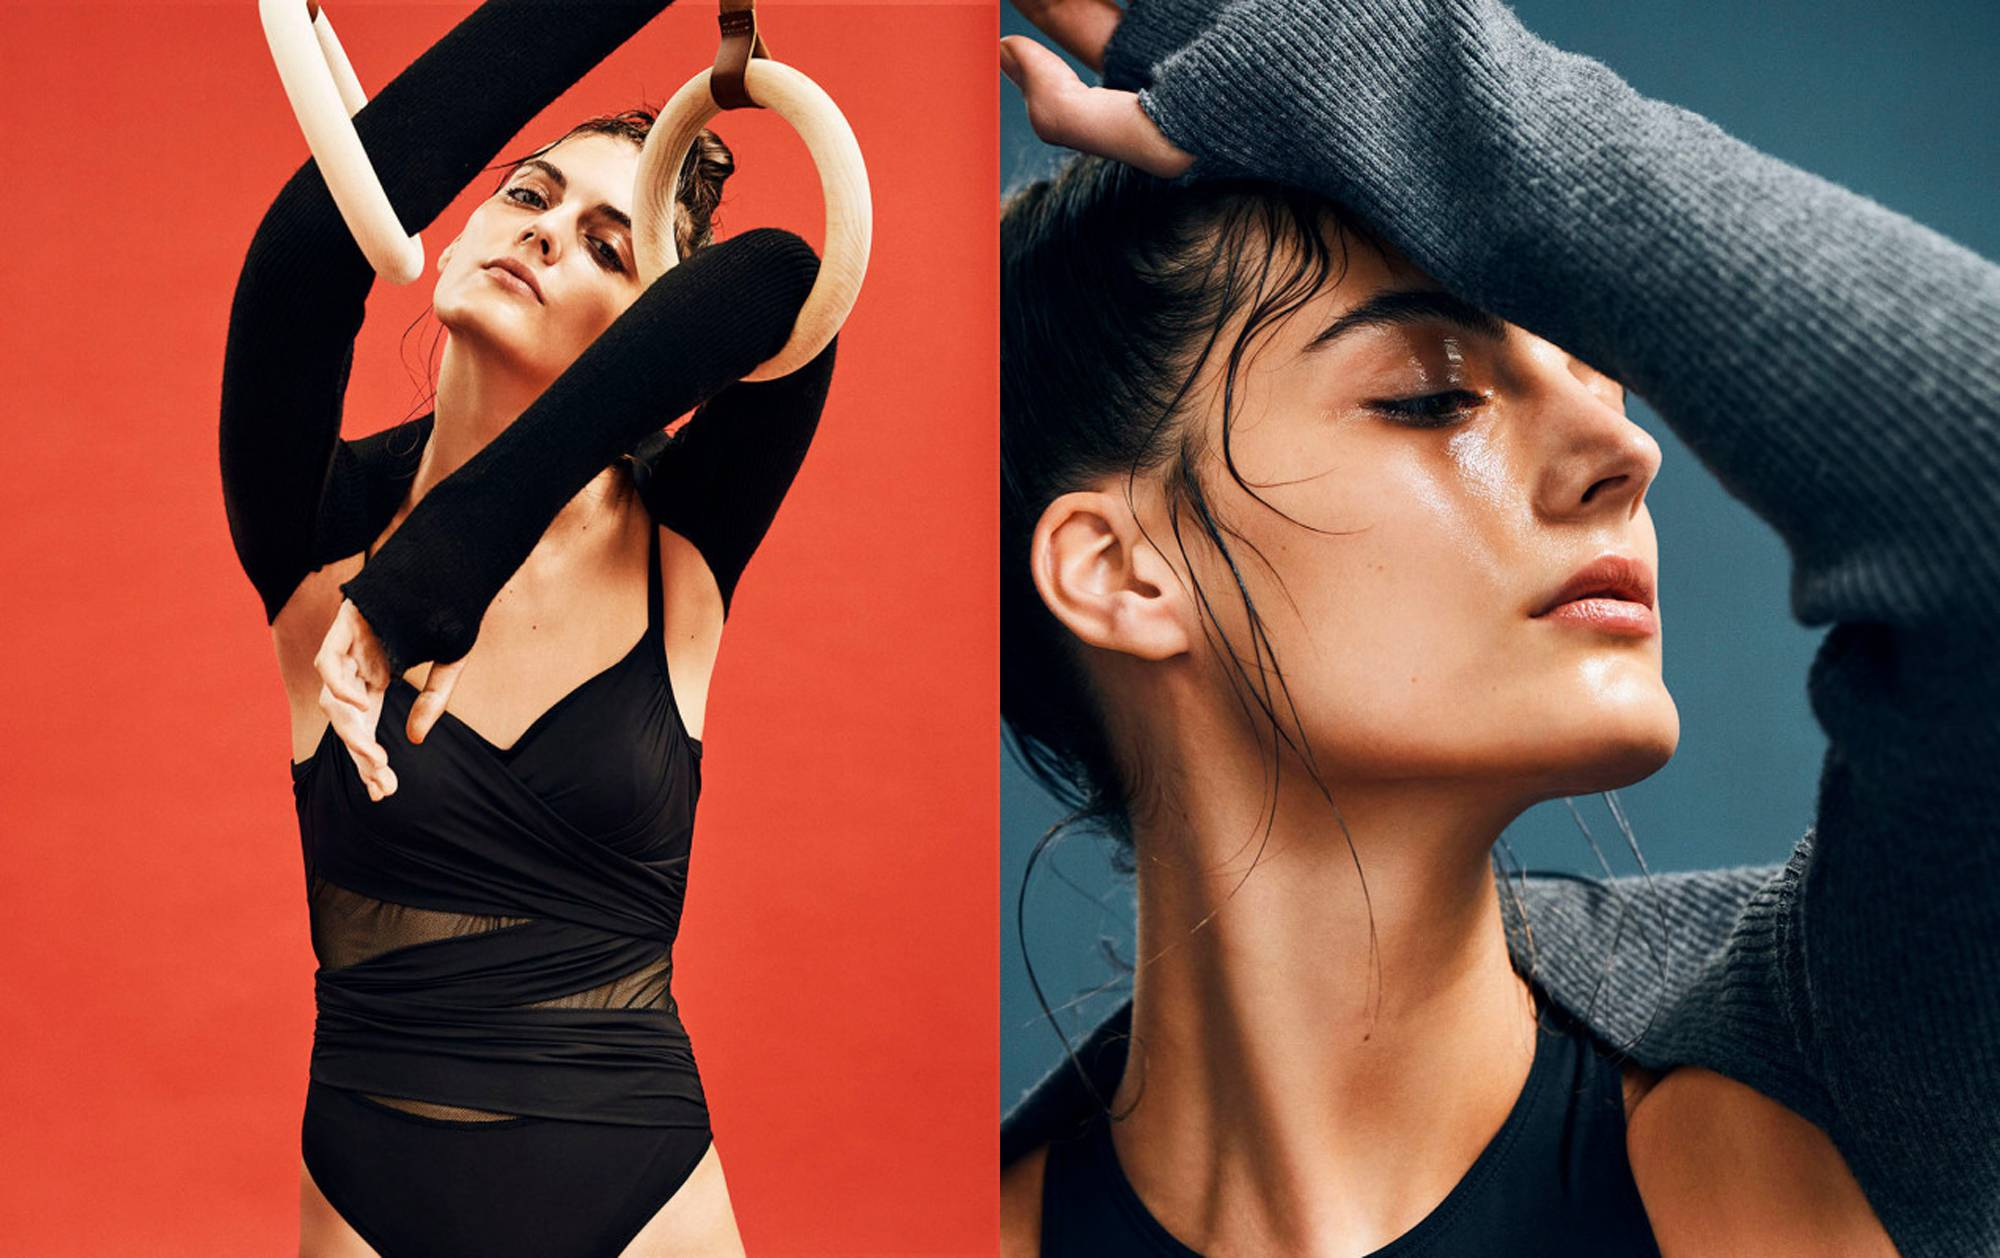 marie-claire-france-yesonfashion-com-02